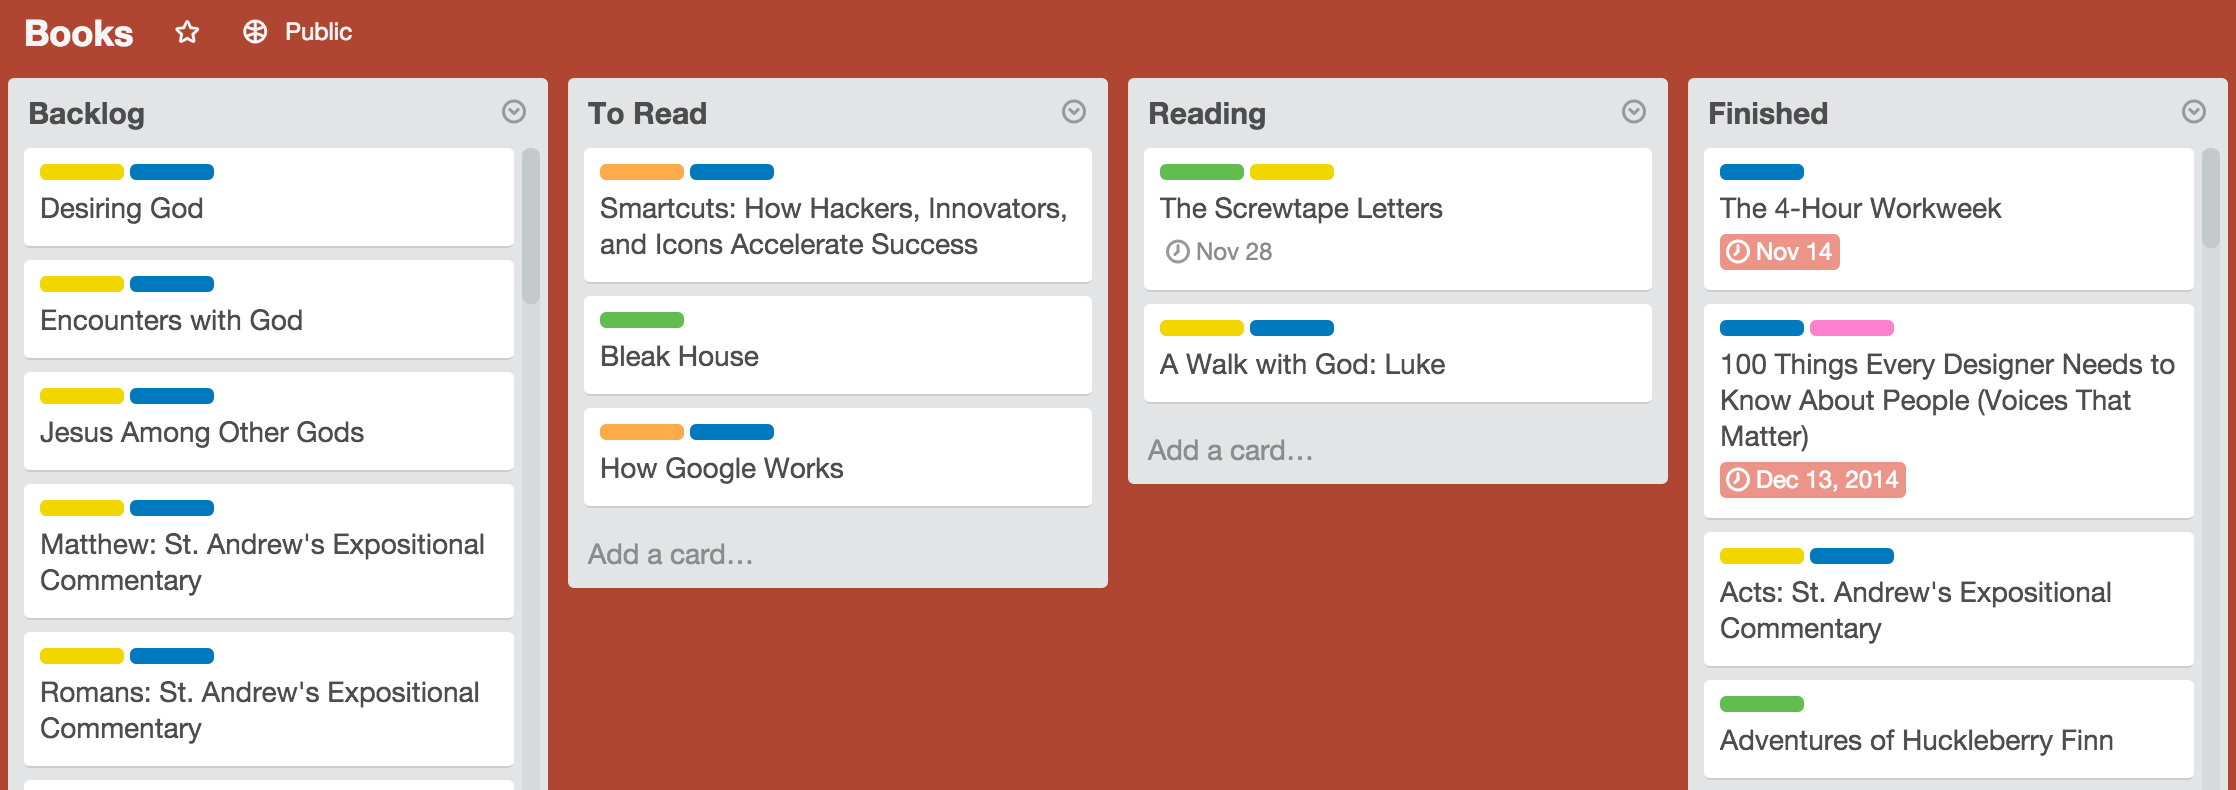 Trello Books board